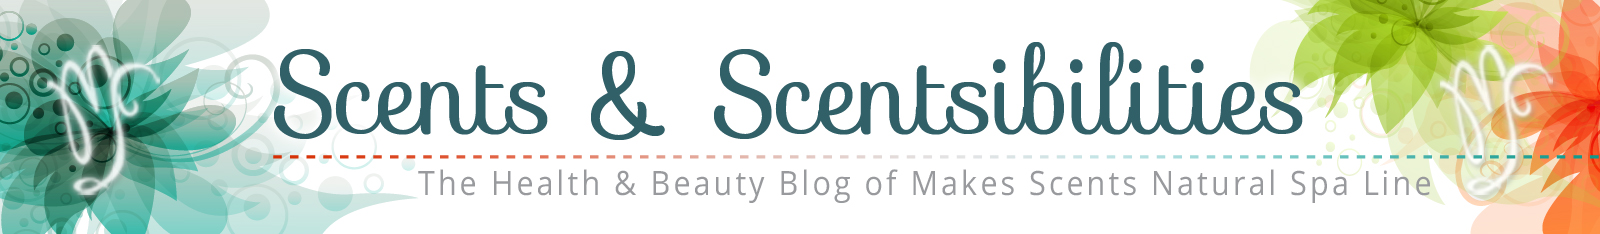 Scents & Scentsibilities - Makes Scents Natural Spa Line Blog